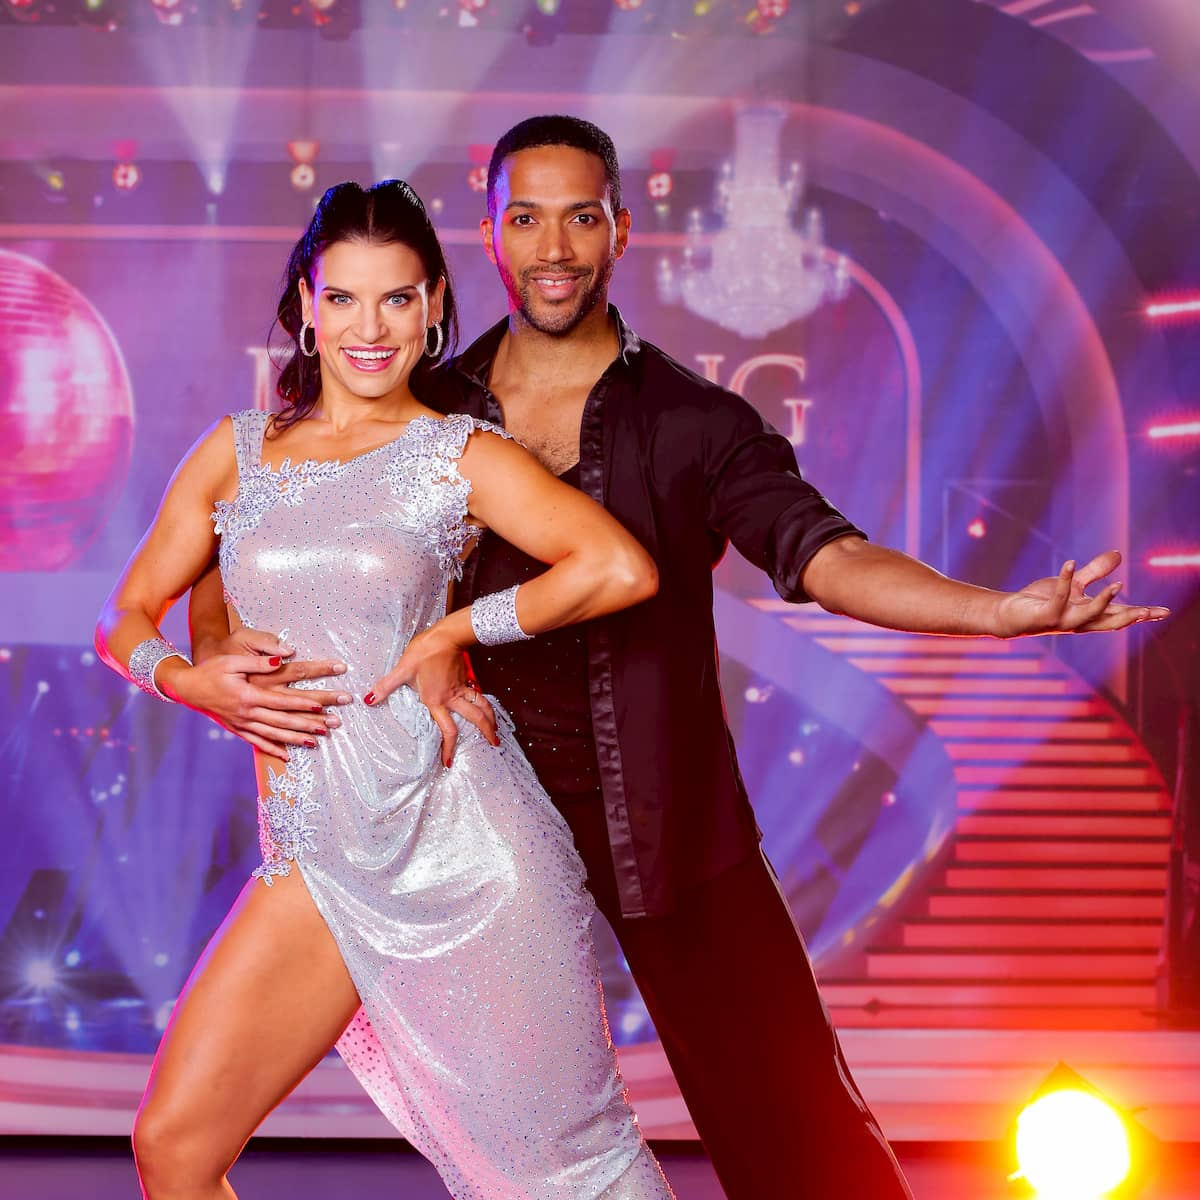 Conny Kreuter - Cesar Sampson bei den Dancing Stars am 6.11.2020